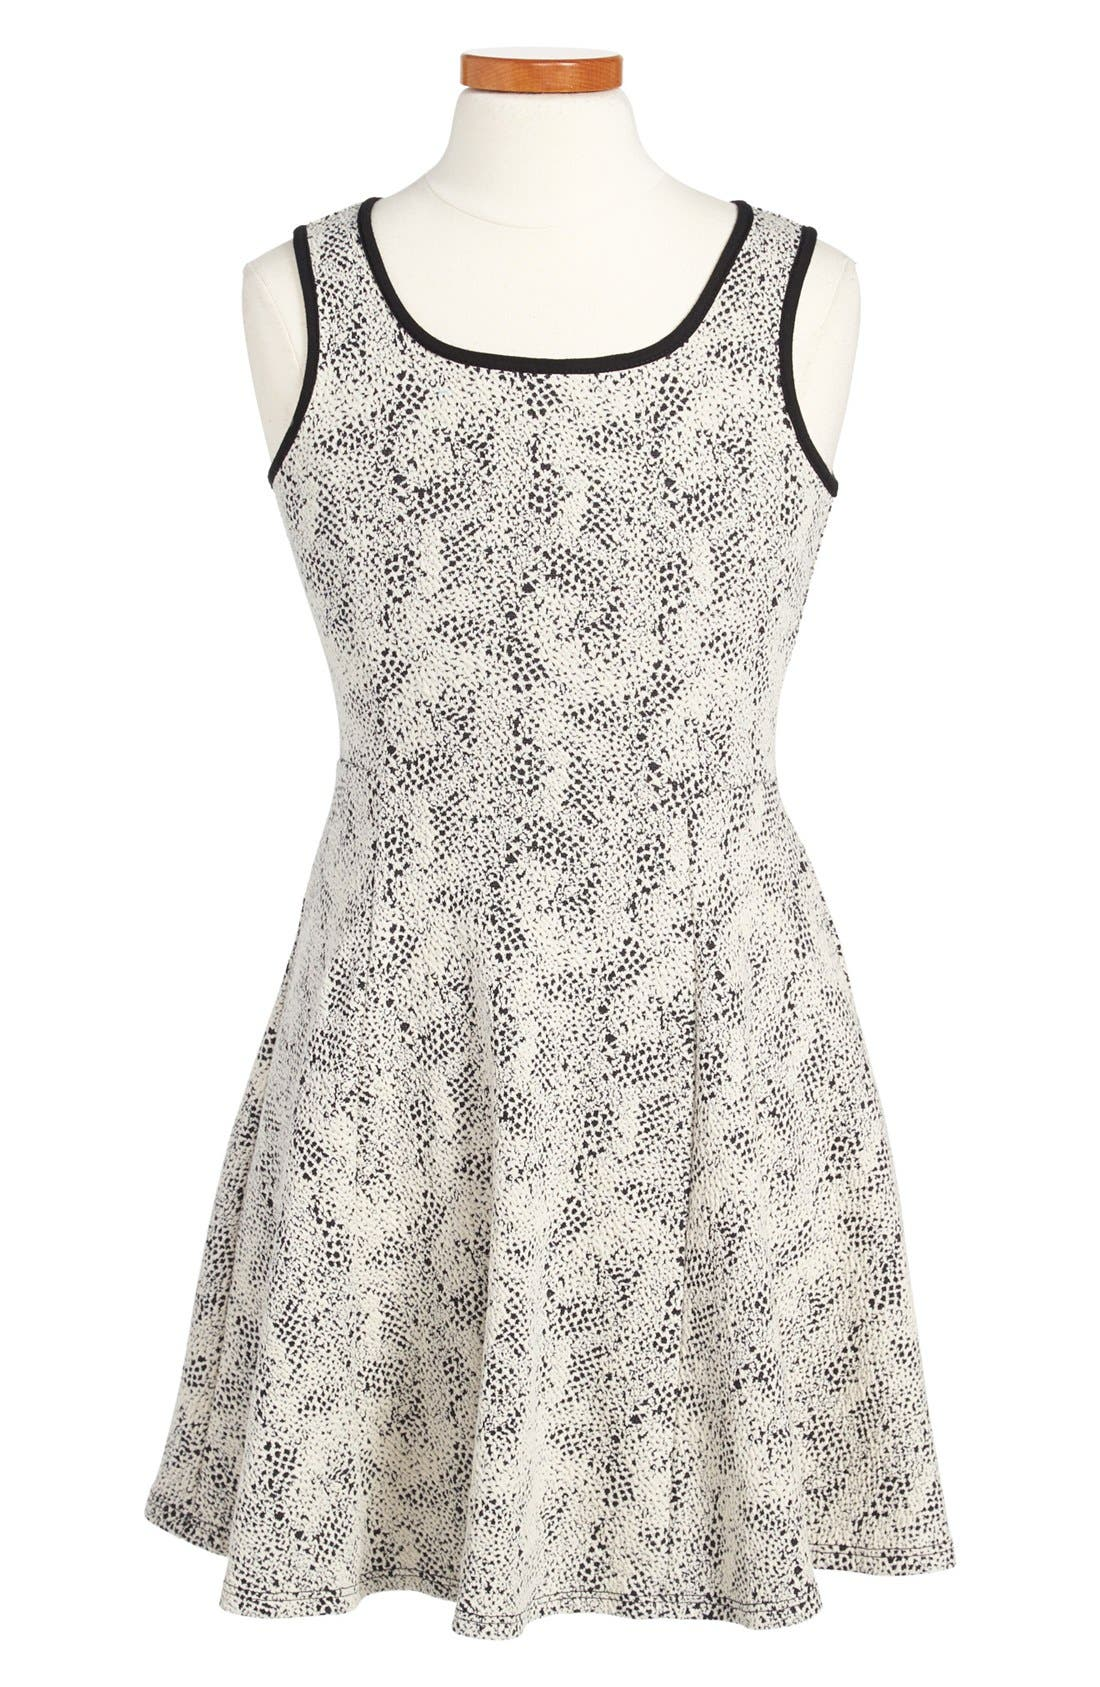 Main Image - Soprano Sleeveless Knit Skater Dress (Little Girls & Big Girls)